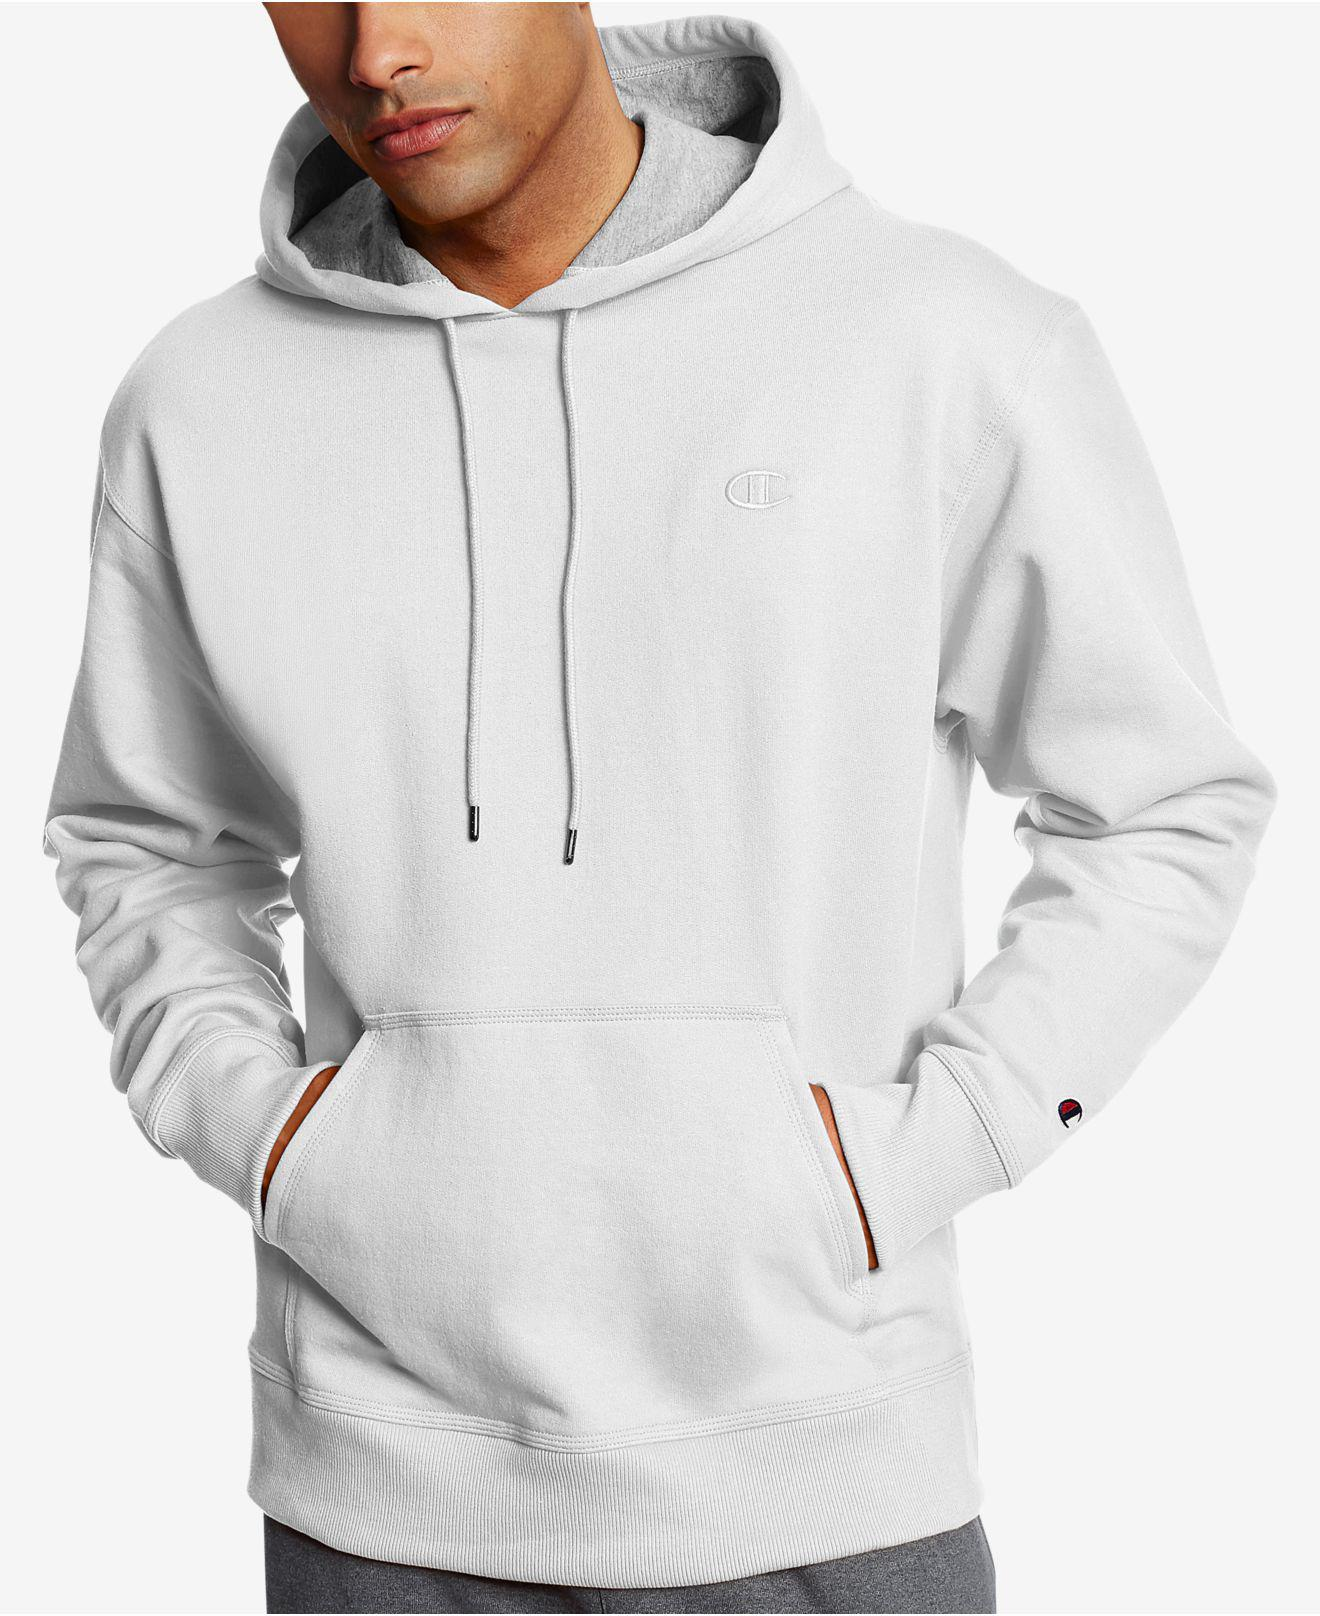 6232c6c39047 Lyst - Champion Men s Powerblend Fleece Hoodie in White for Men